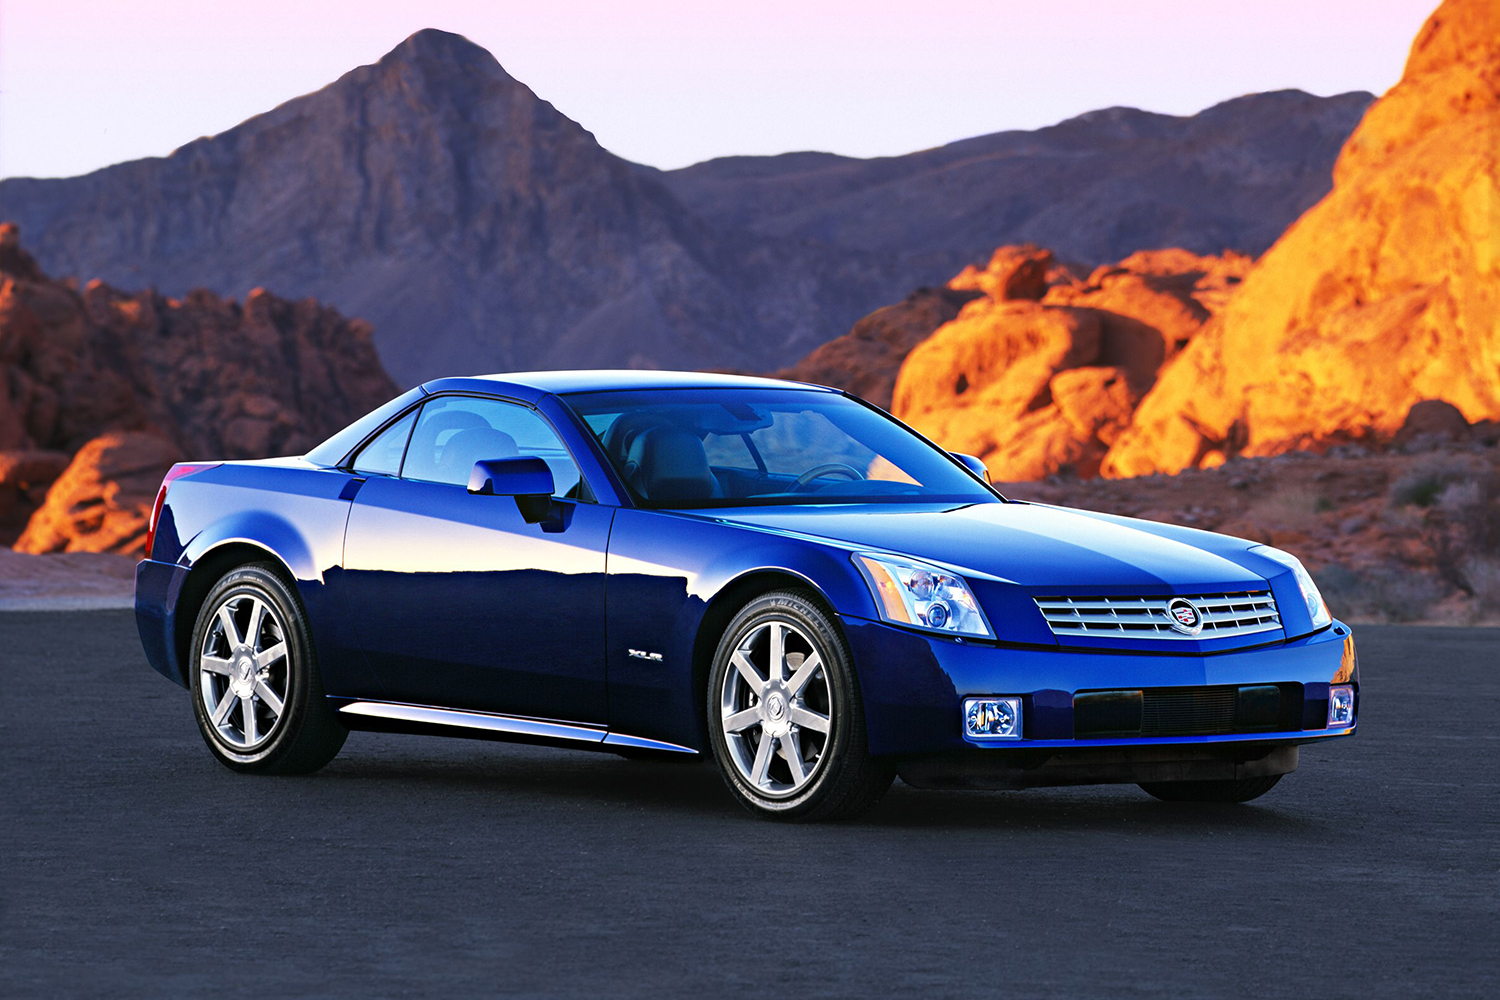 The ill-fated 2004 Cadillac XLR sitting still on the concrete at sunset with desert hills in the background